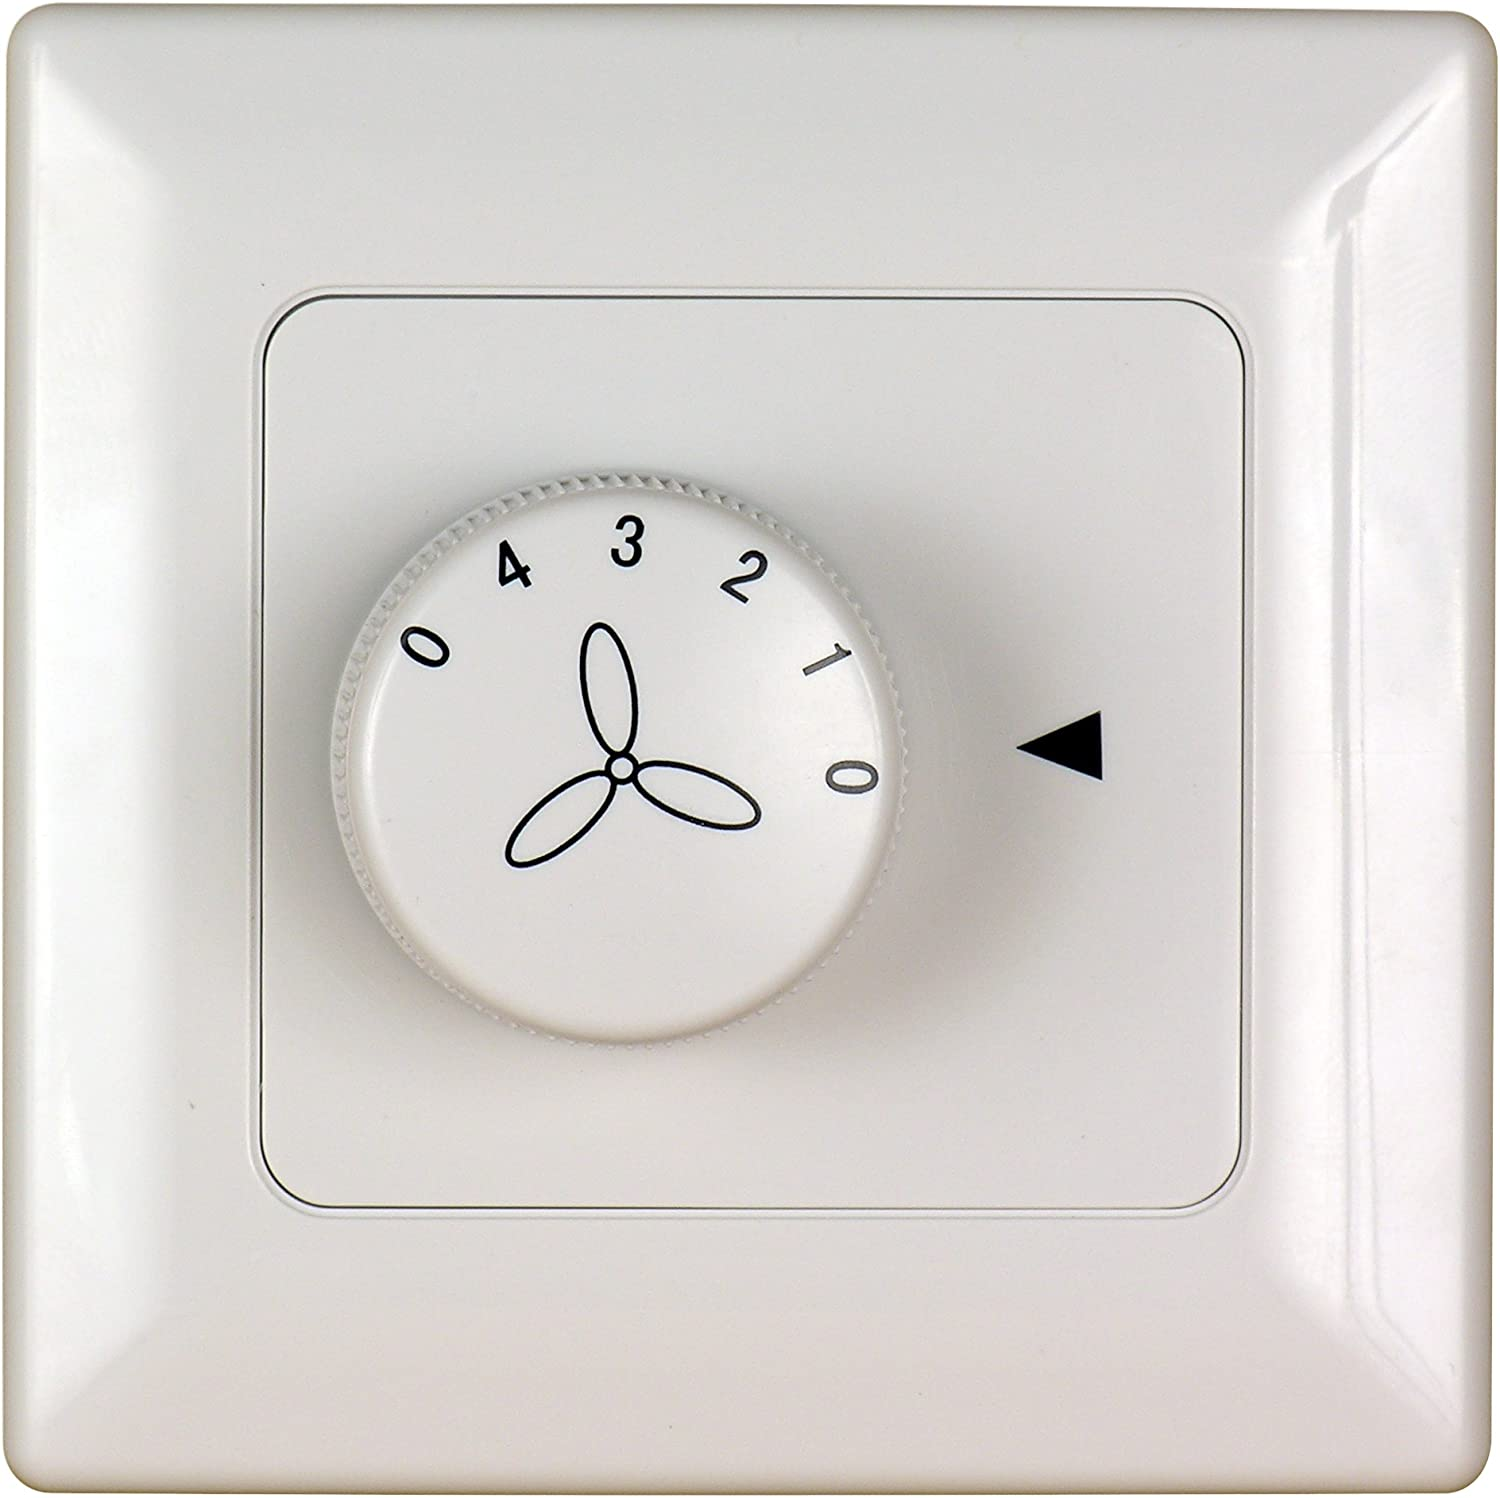 Fanimation C1-220 Traditional Wall 70% OFF Outlet Popular product White Controls Collection in